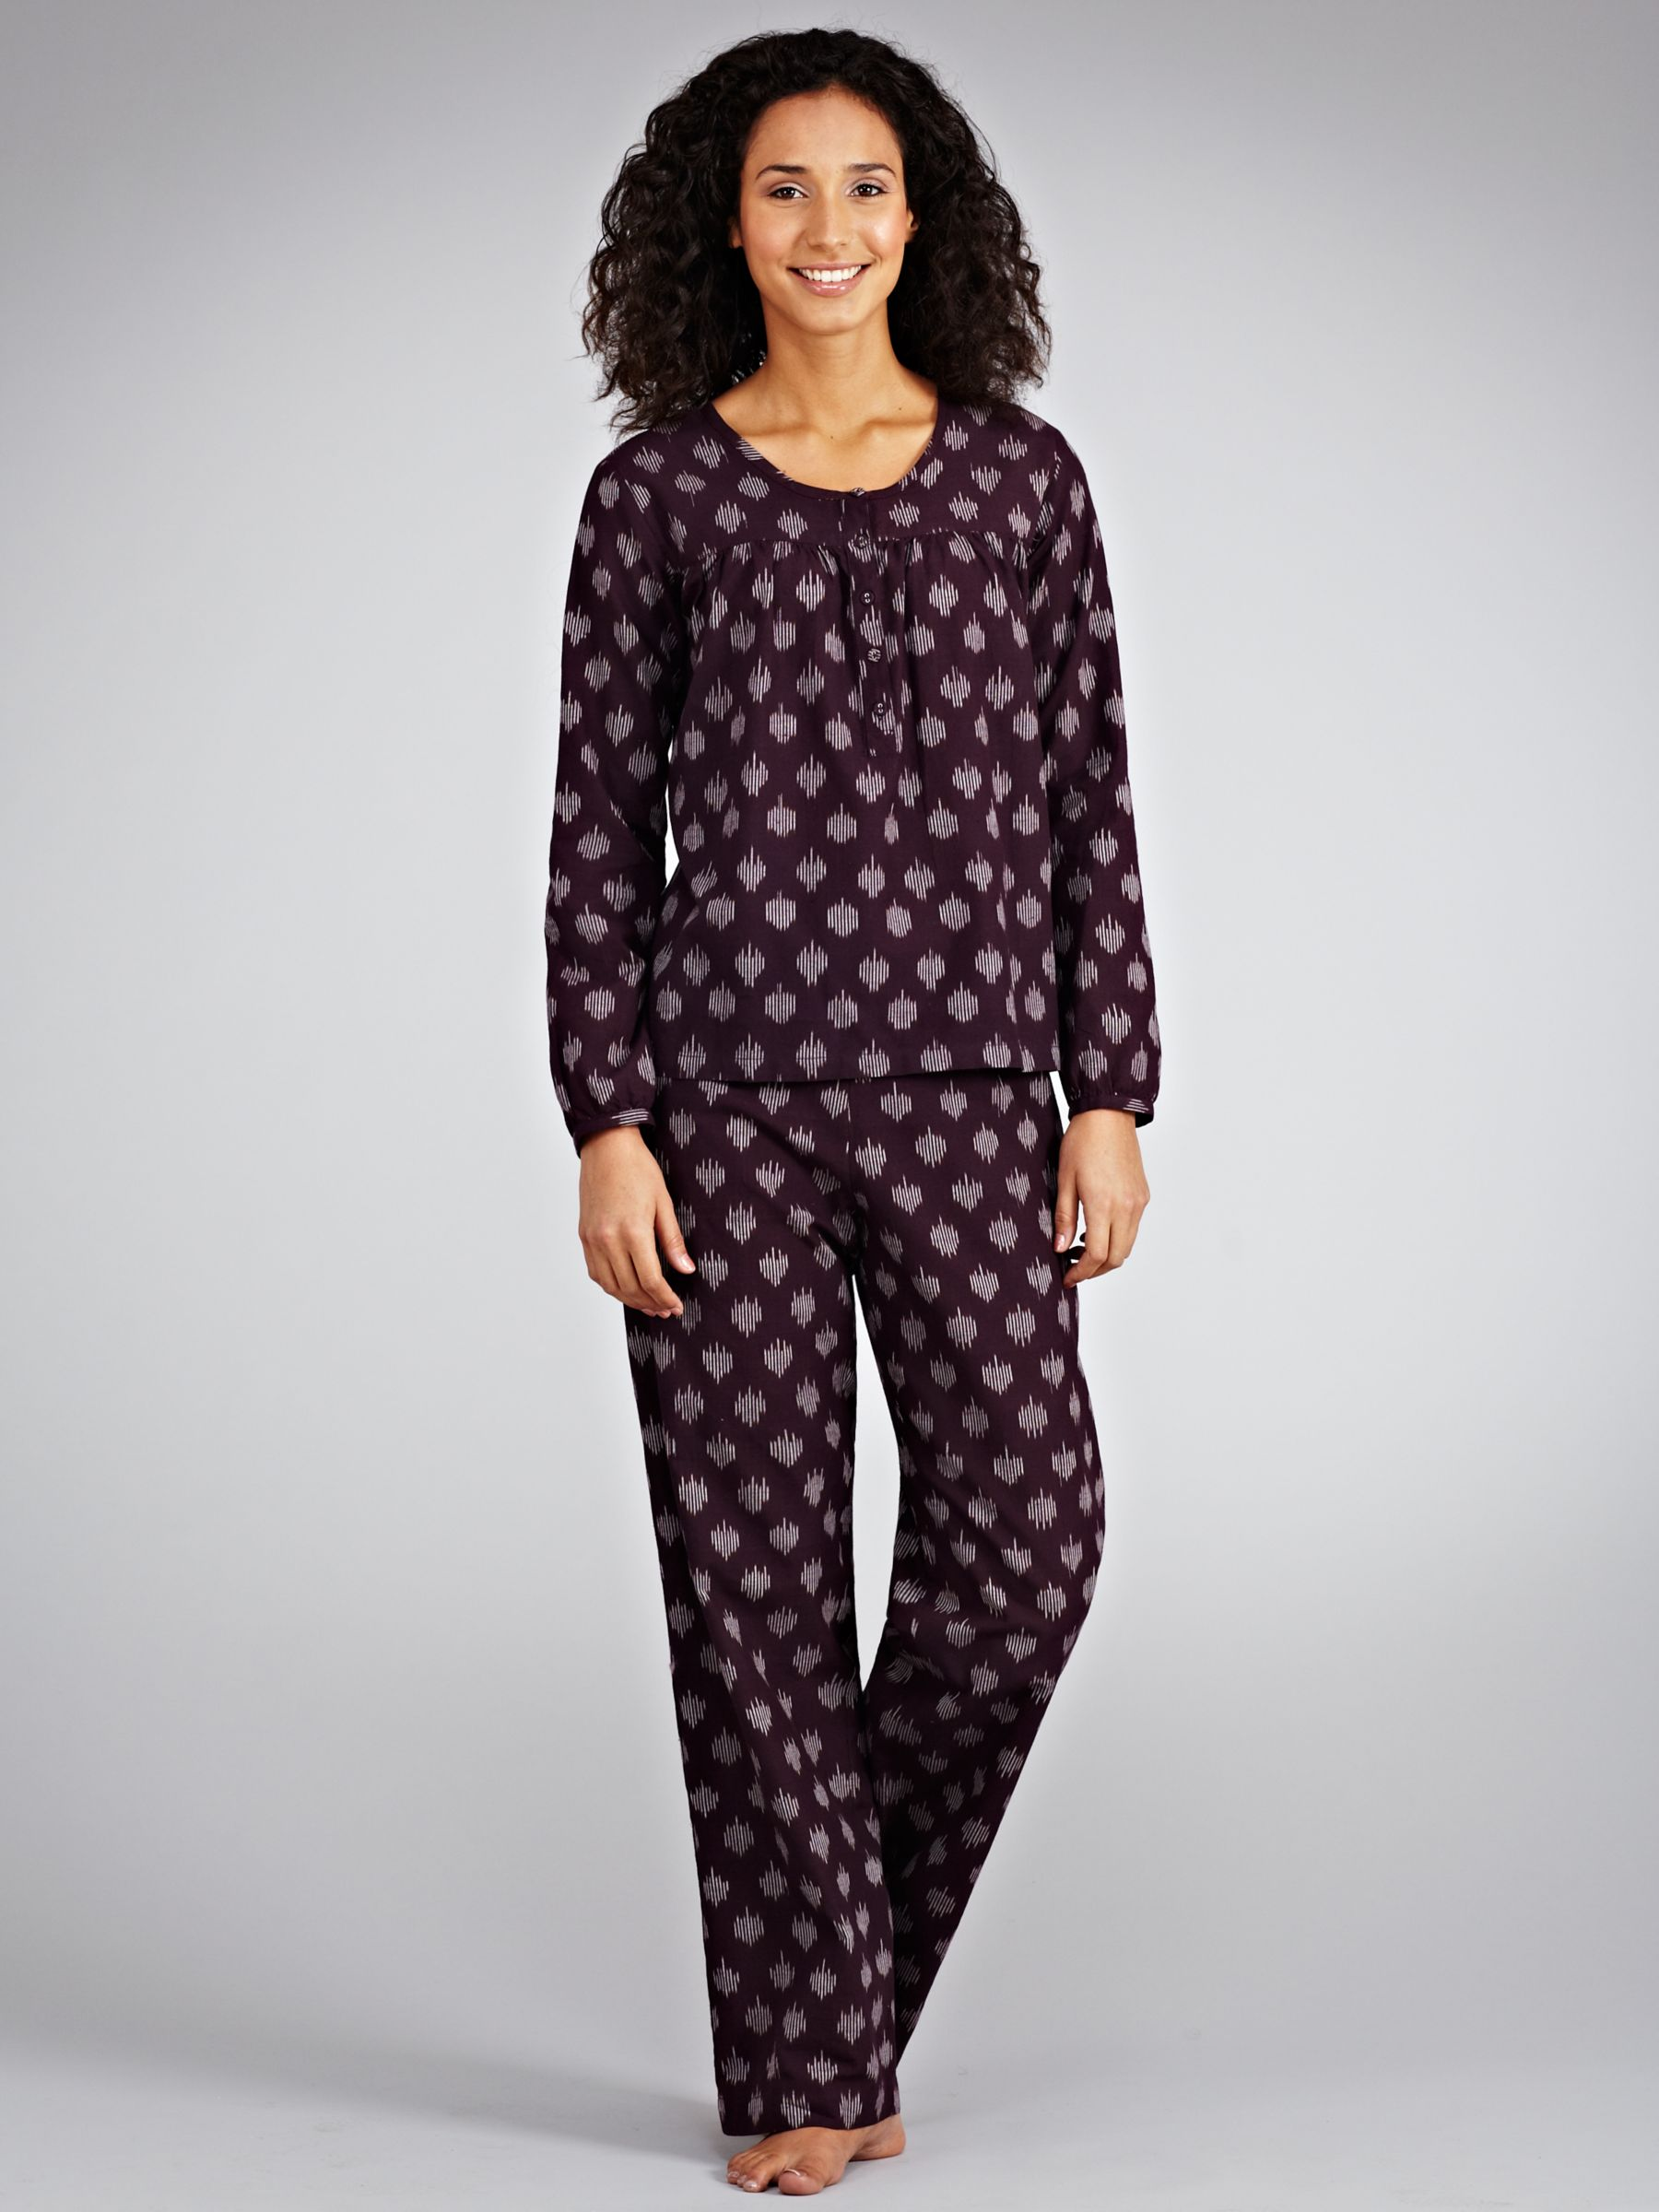 Toast Ikat Print Cotton Pyjama Set, Aubergine/ off white